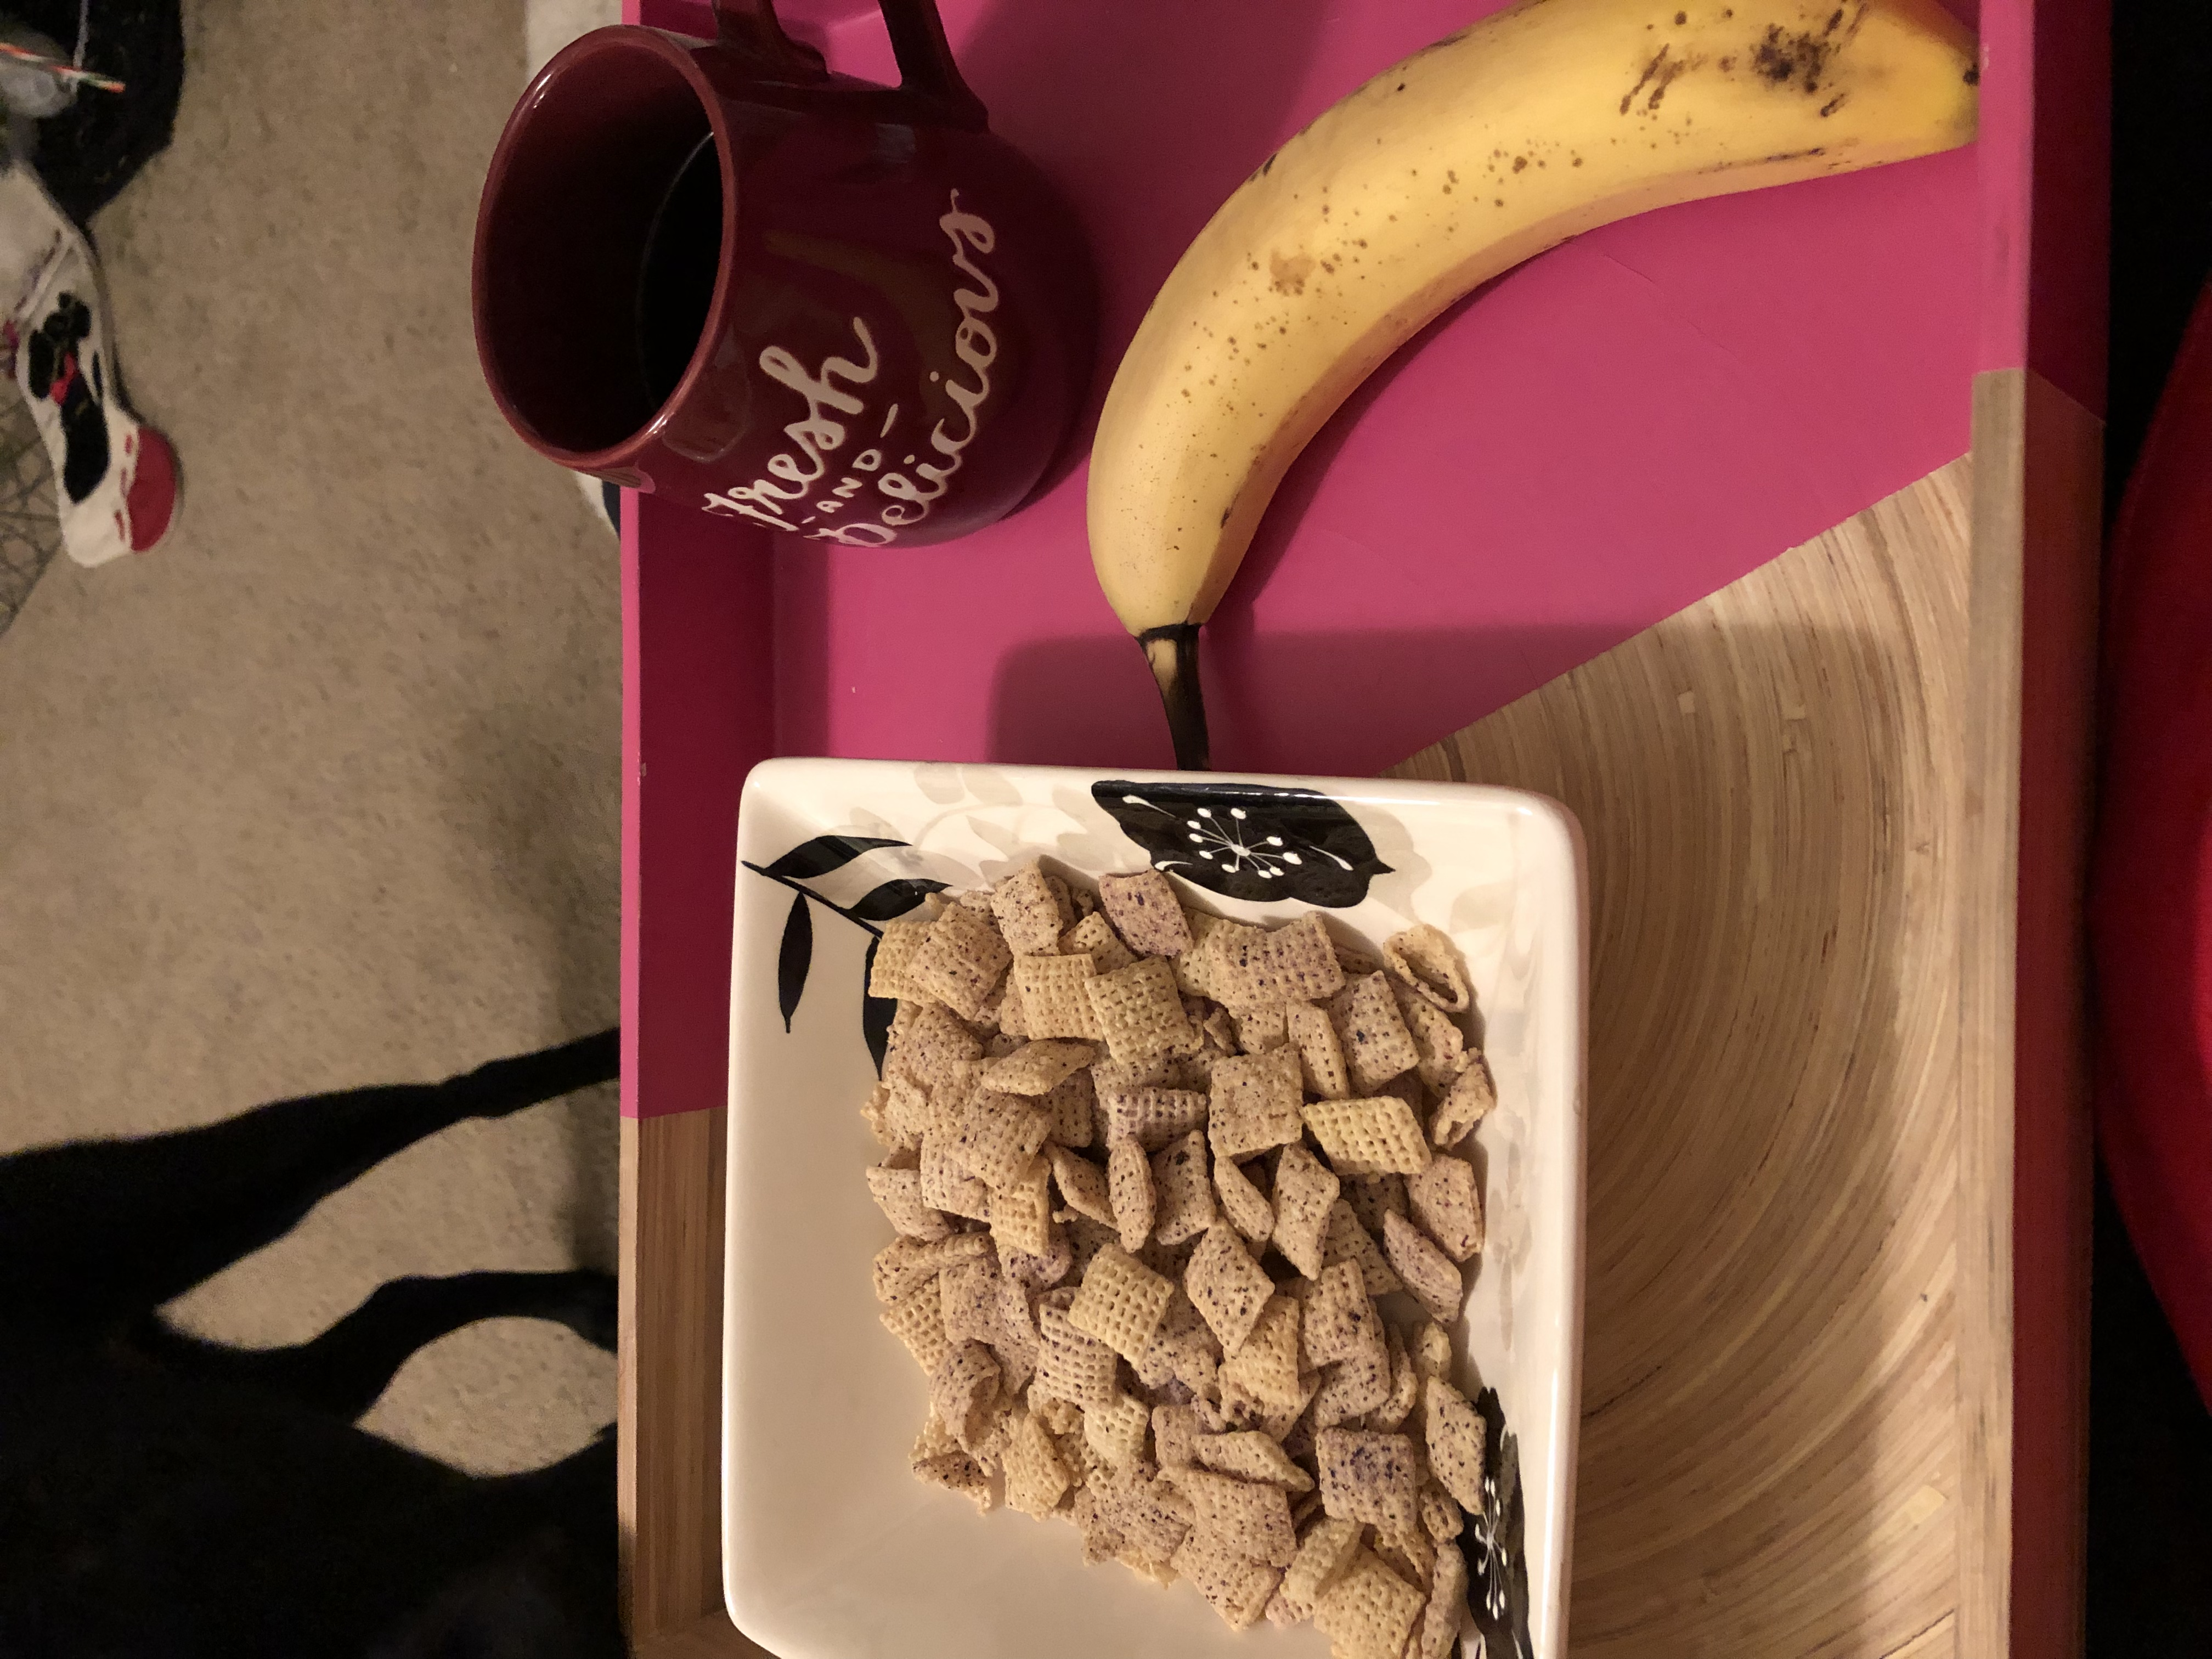 Blueberry chex cereal with a banana and black coffee